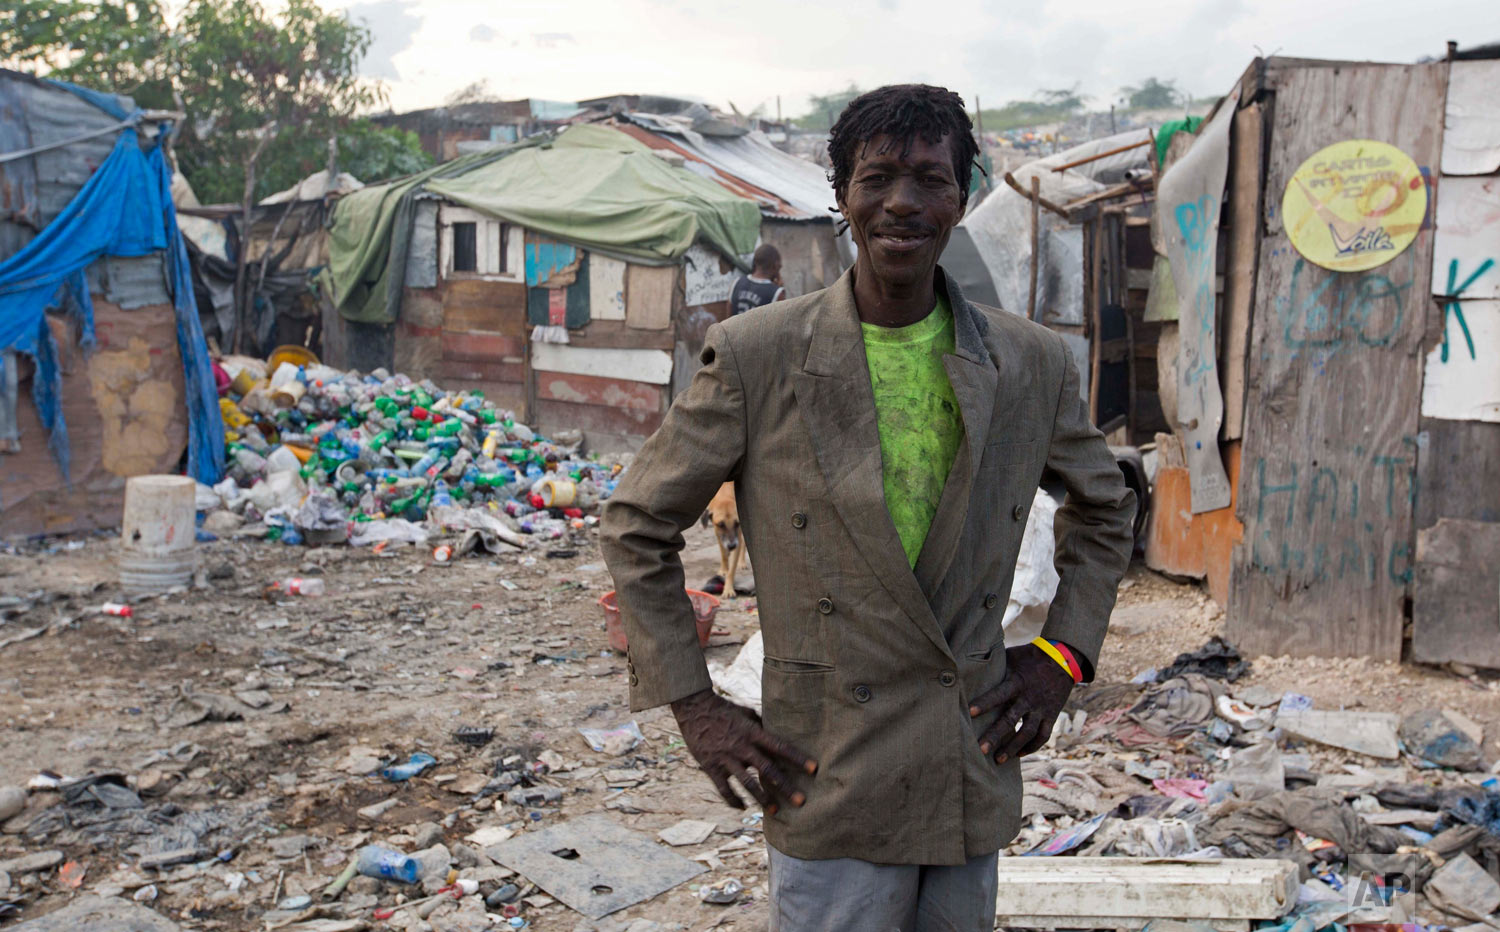 Wilfrid Jocelyn, 52, poses for a portrait near his home on the edge of the landfill. (AP Photo/Dieu Nalio Chery)